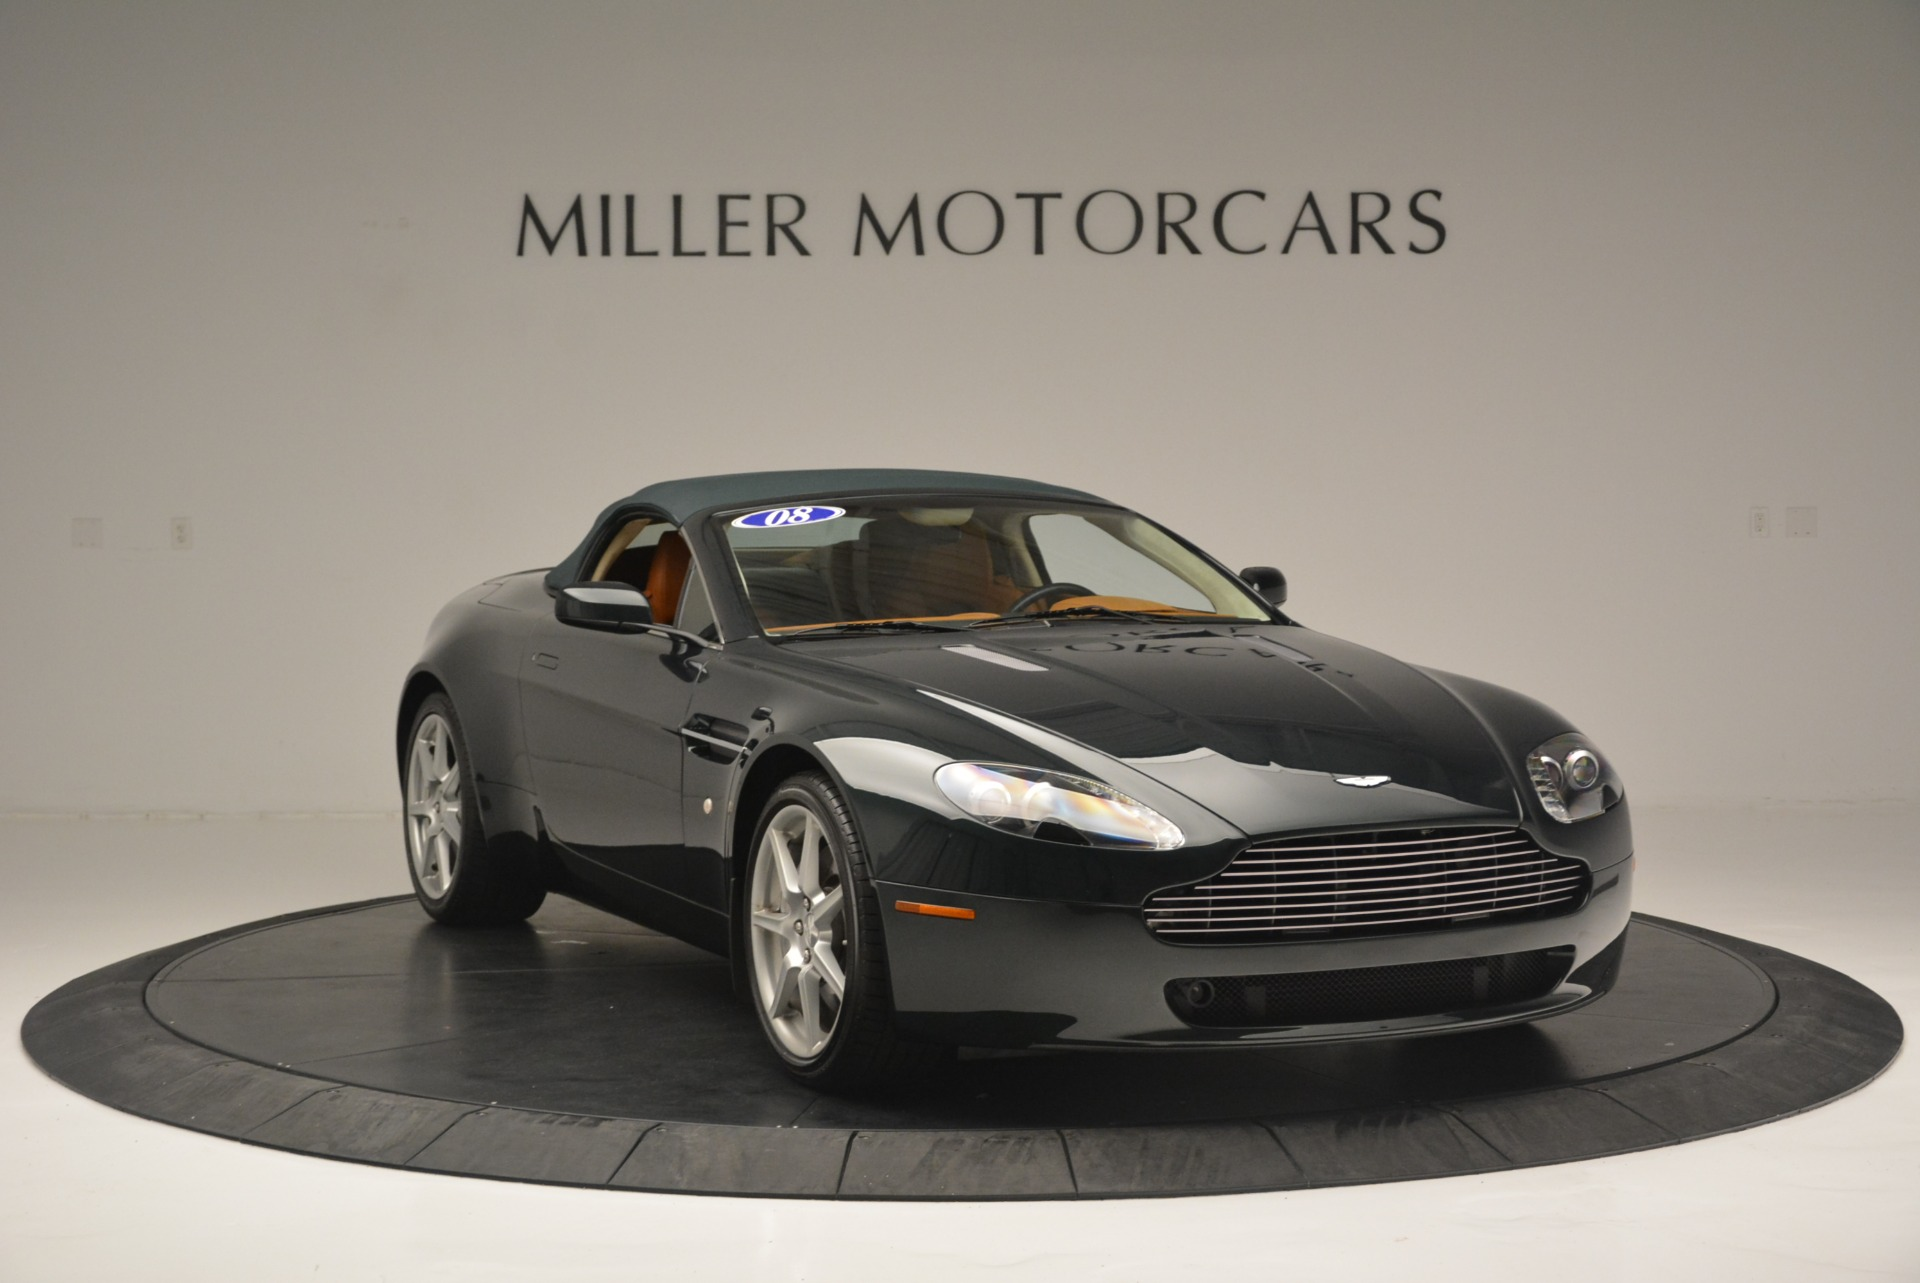 Used 2008 Aston Martin V8 Vantage Roadster For Sale In Westport, CT 2422_p14